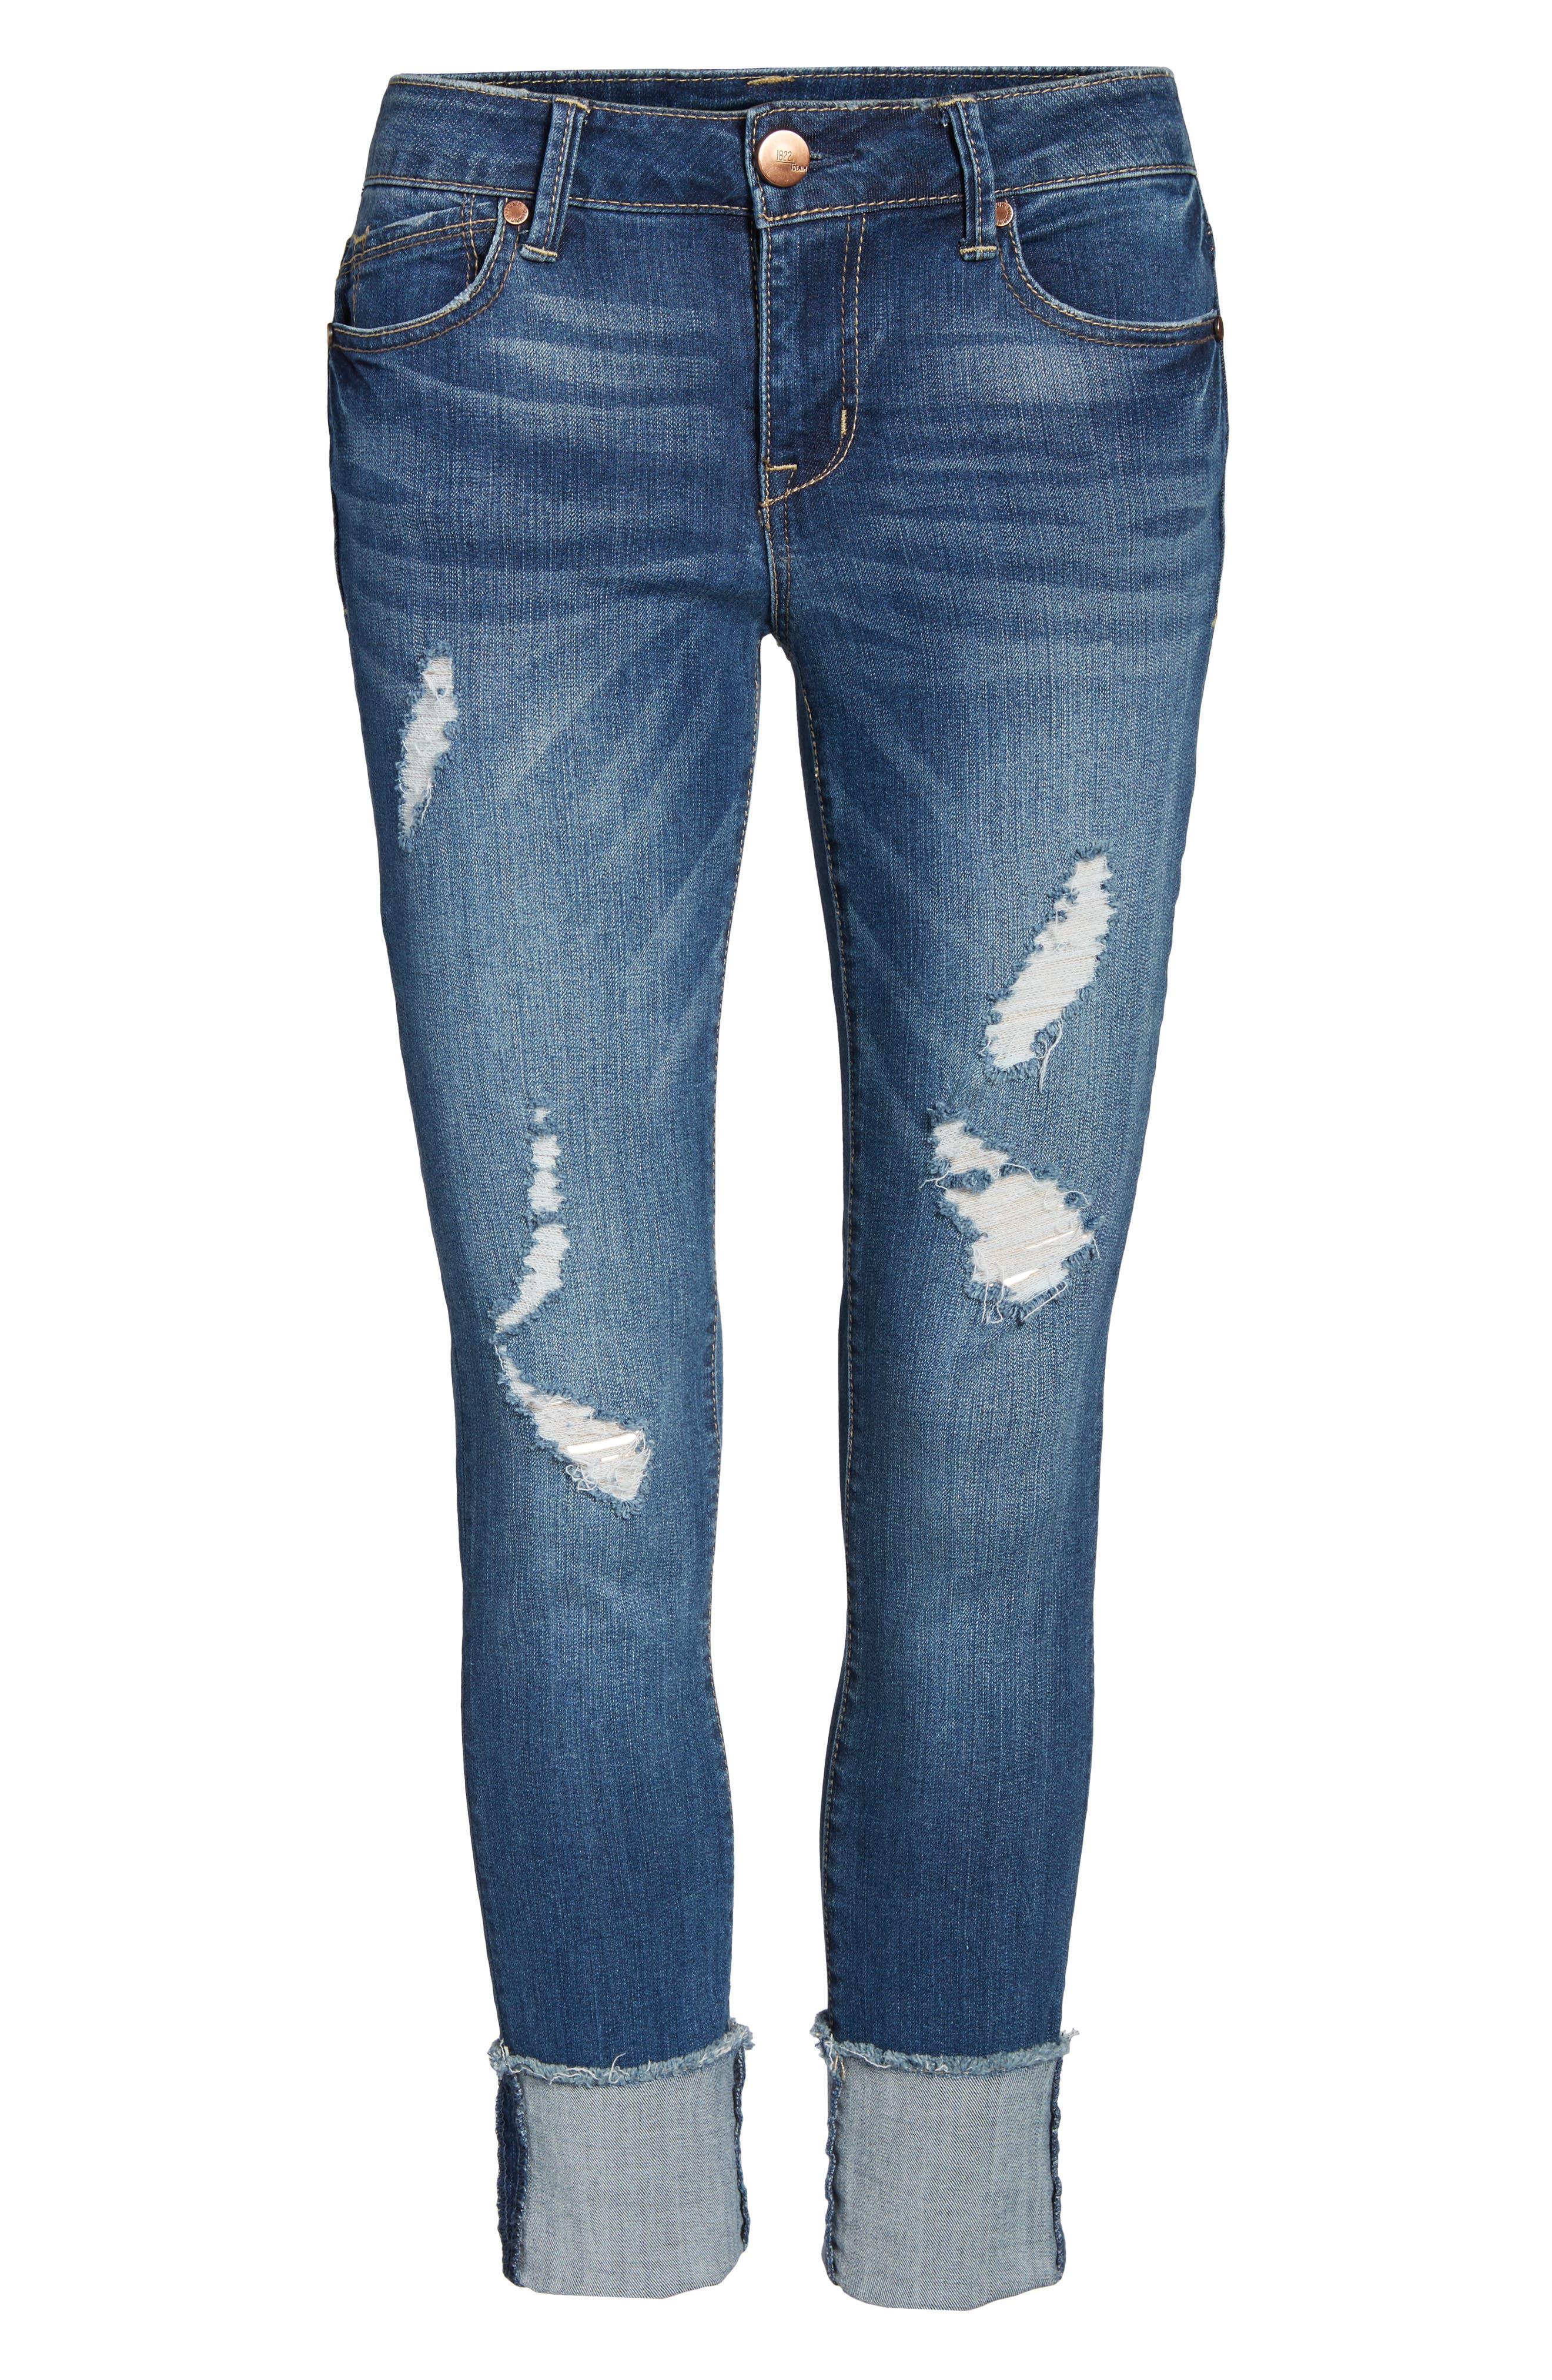 Cuffed Crop Skinny Jeans,                             Alternate thumbnail 6, color,                             IRENE